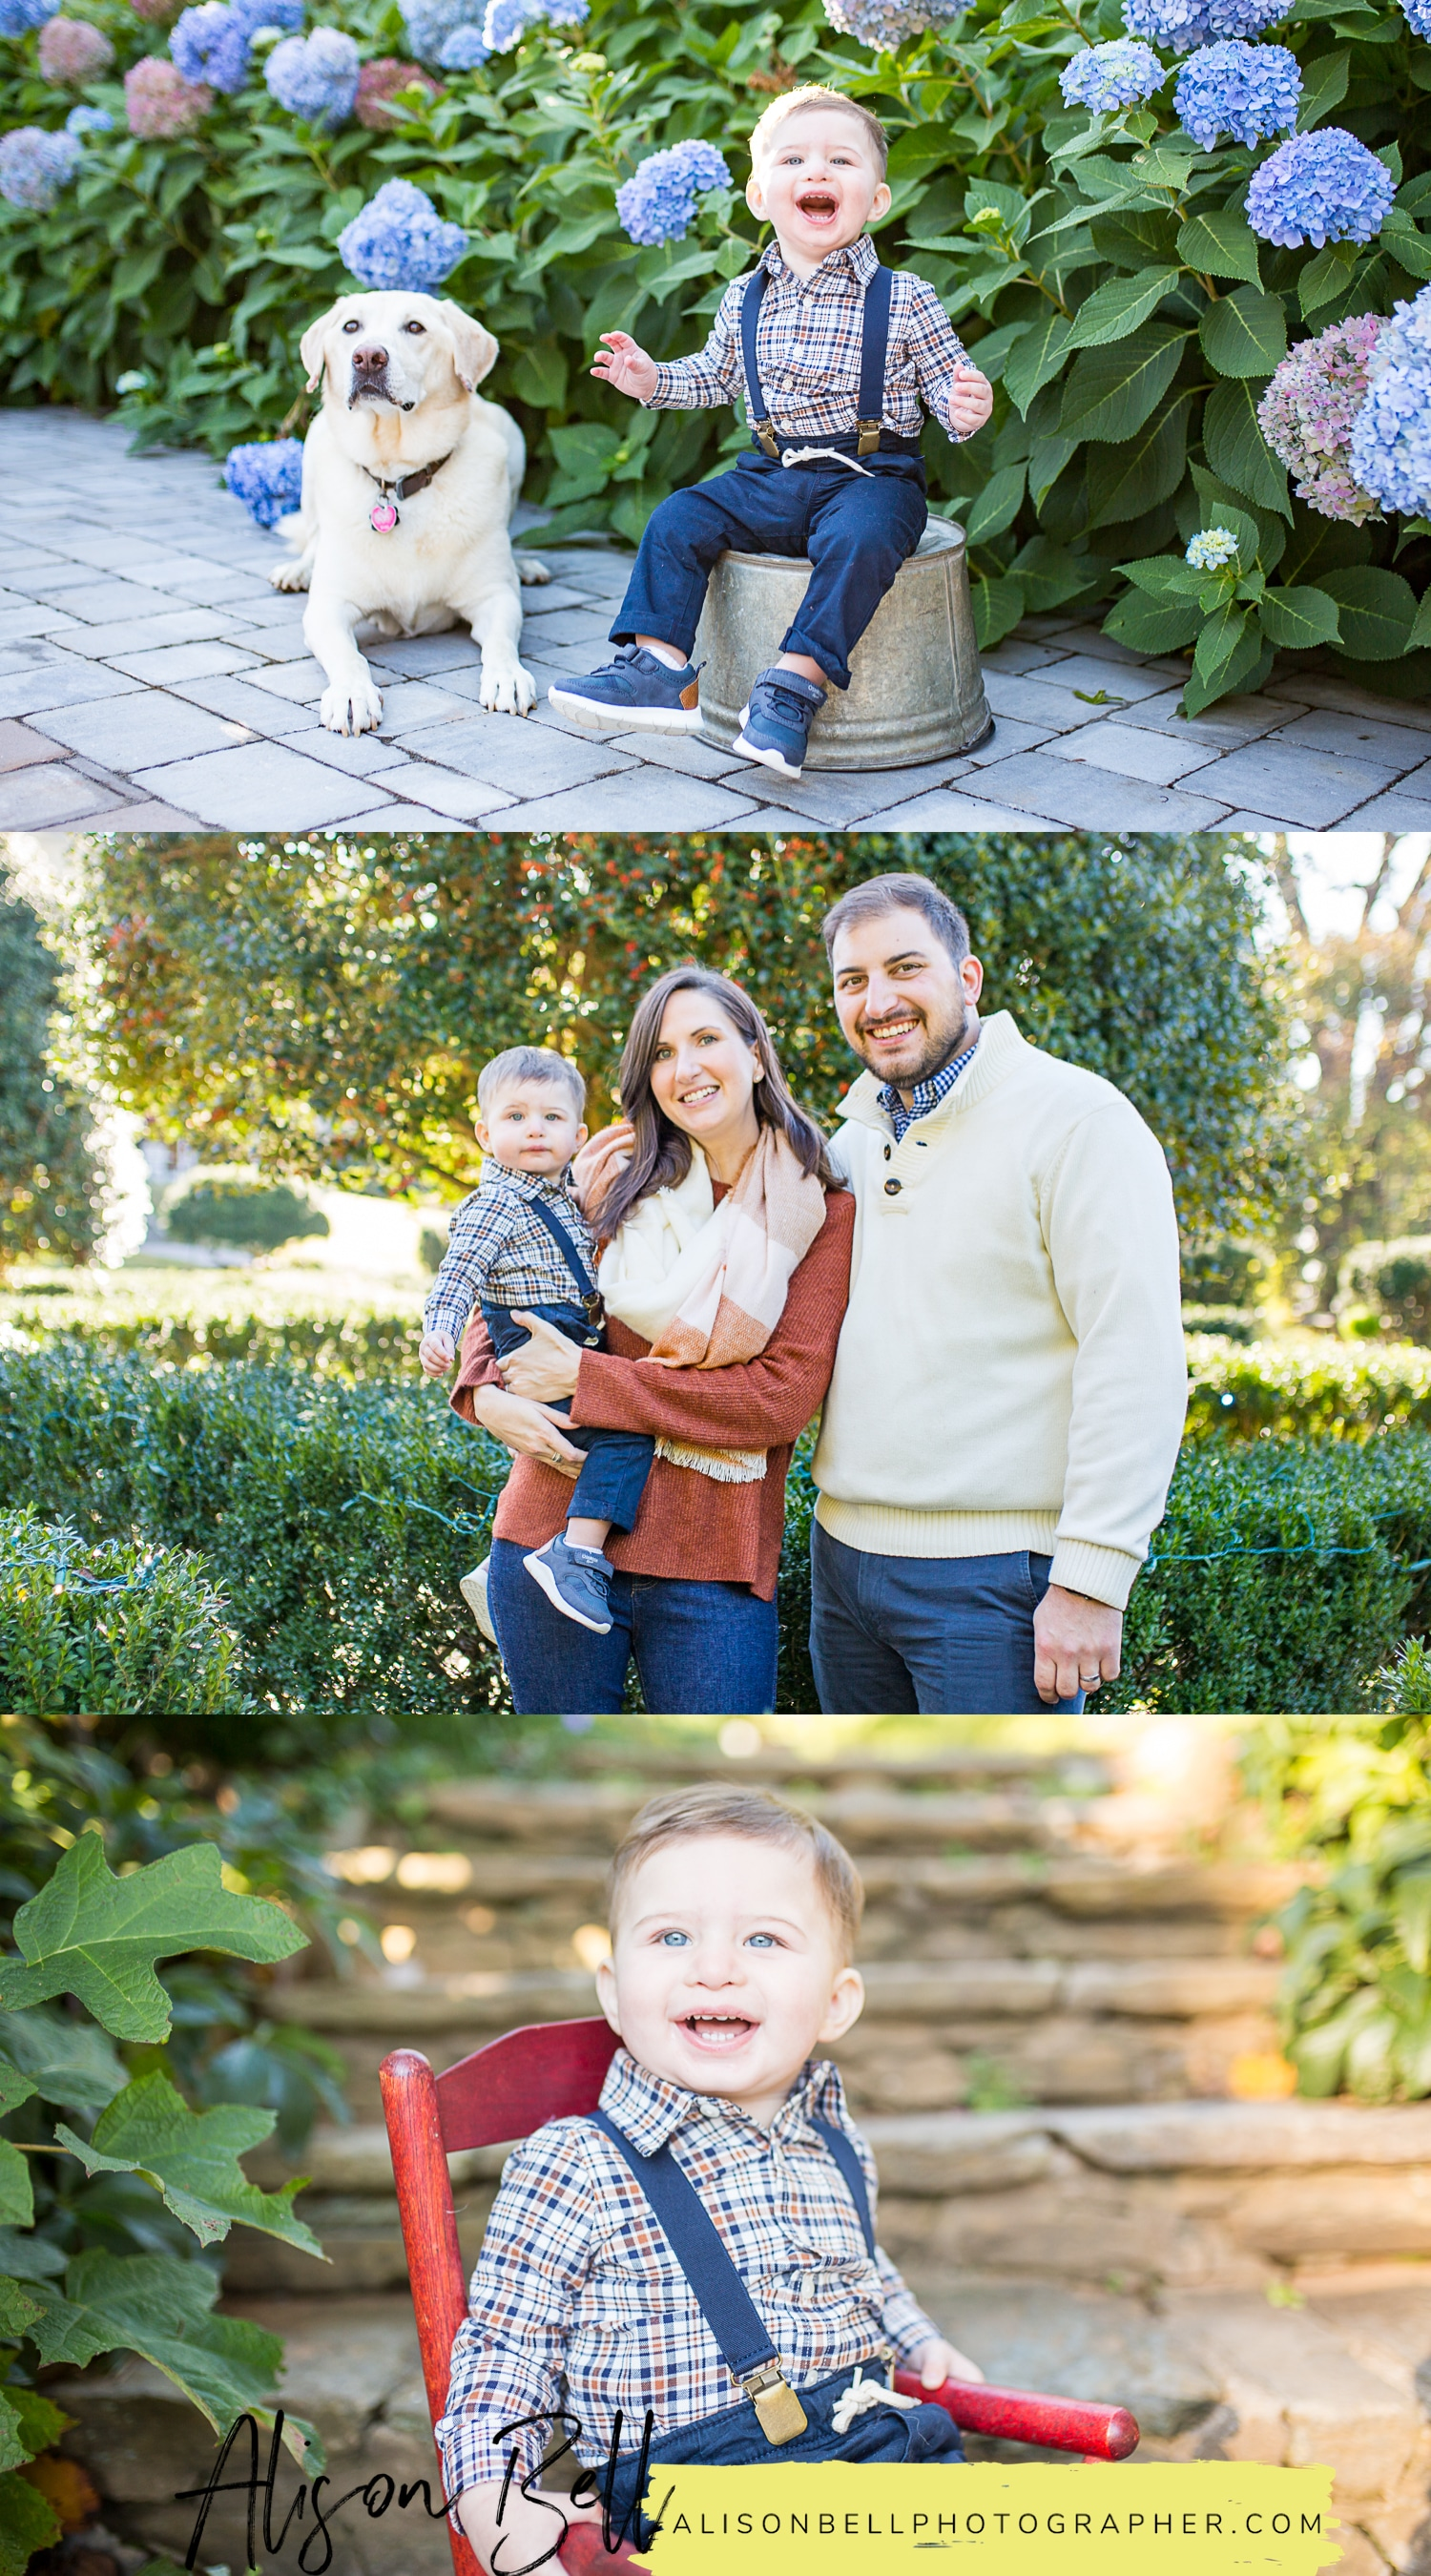 Baby's one year photo session, first birthday family photography session in Northern Virginia by Alison Bell, Photographer. alisonbellphotographer.com